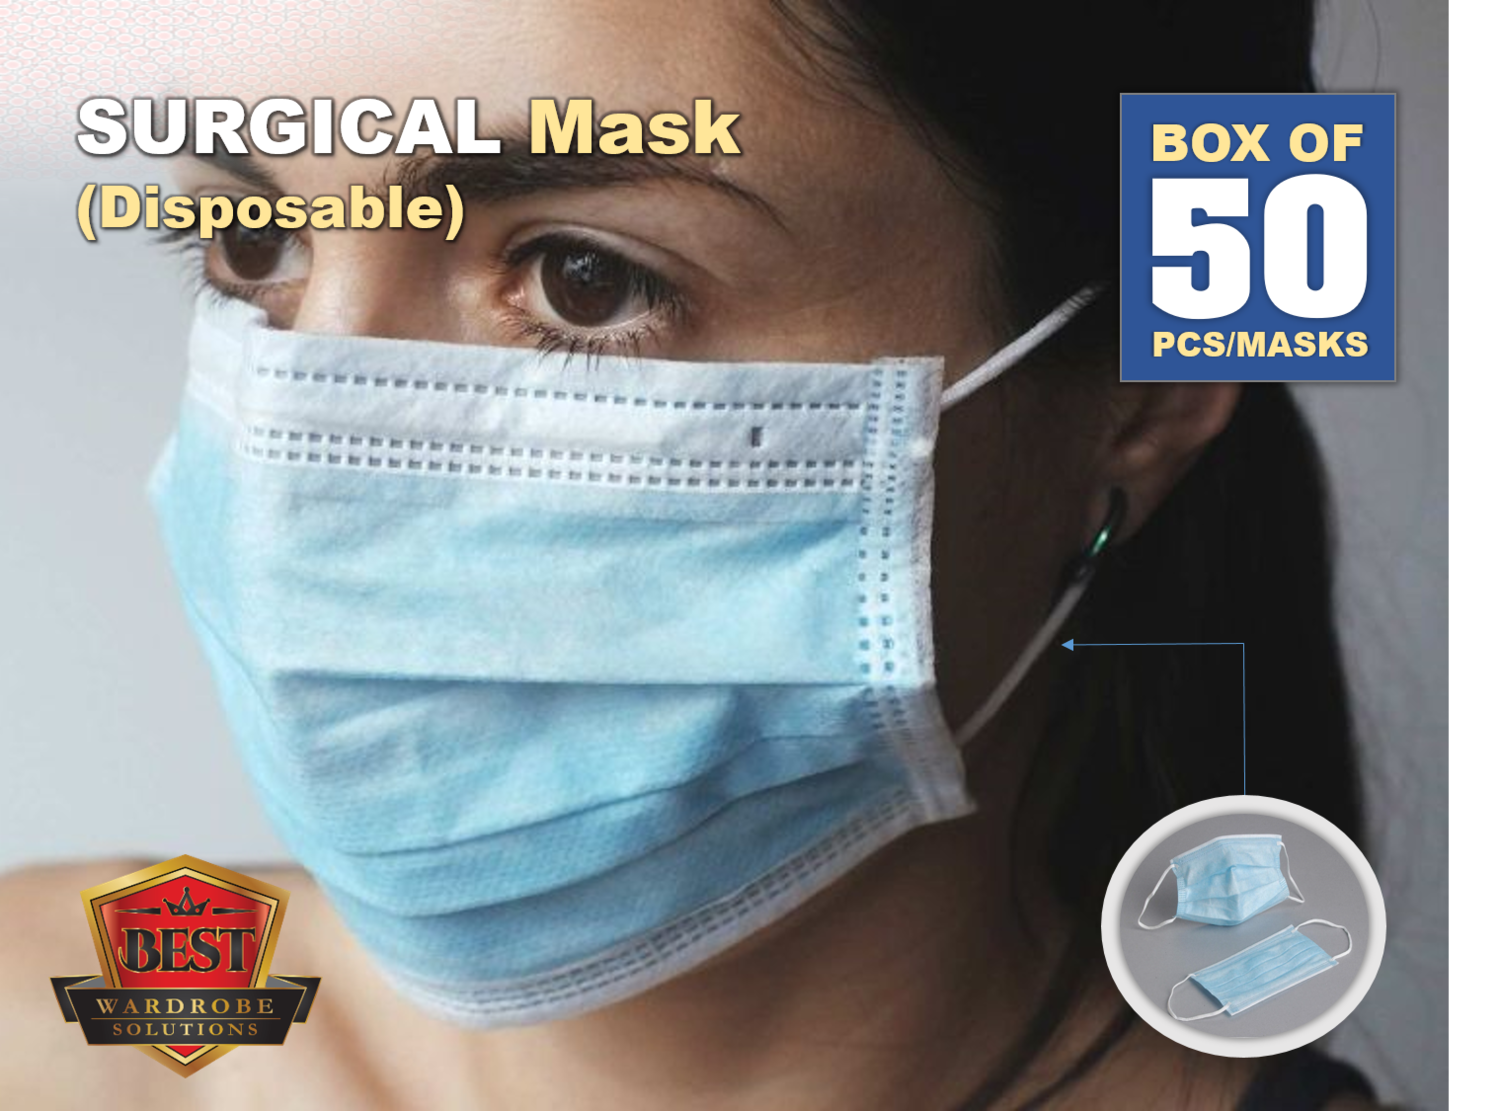 Surgical Mask - 50 PACK (Disposable)